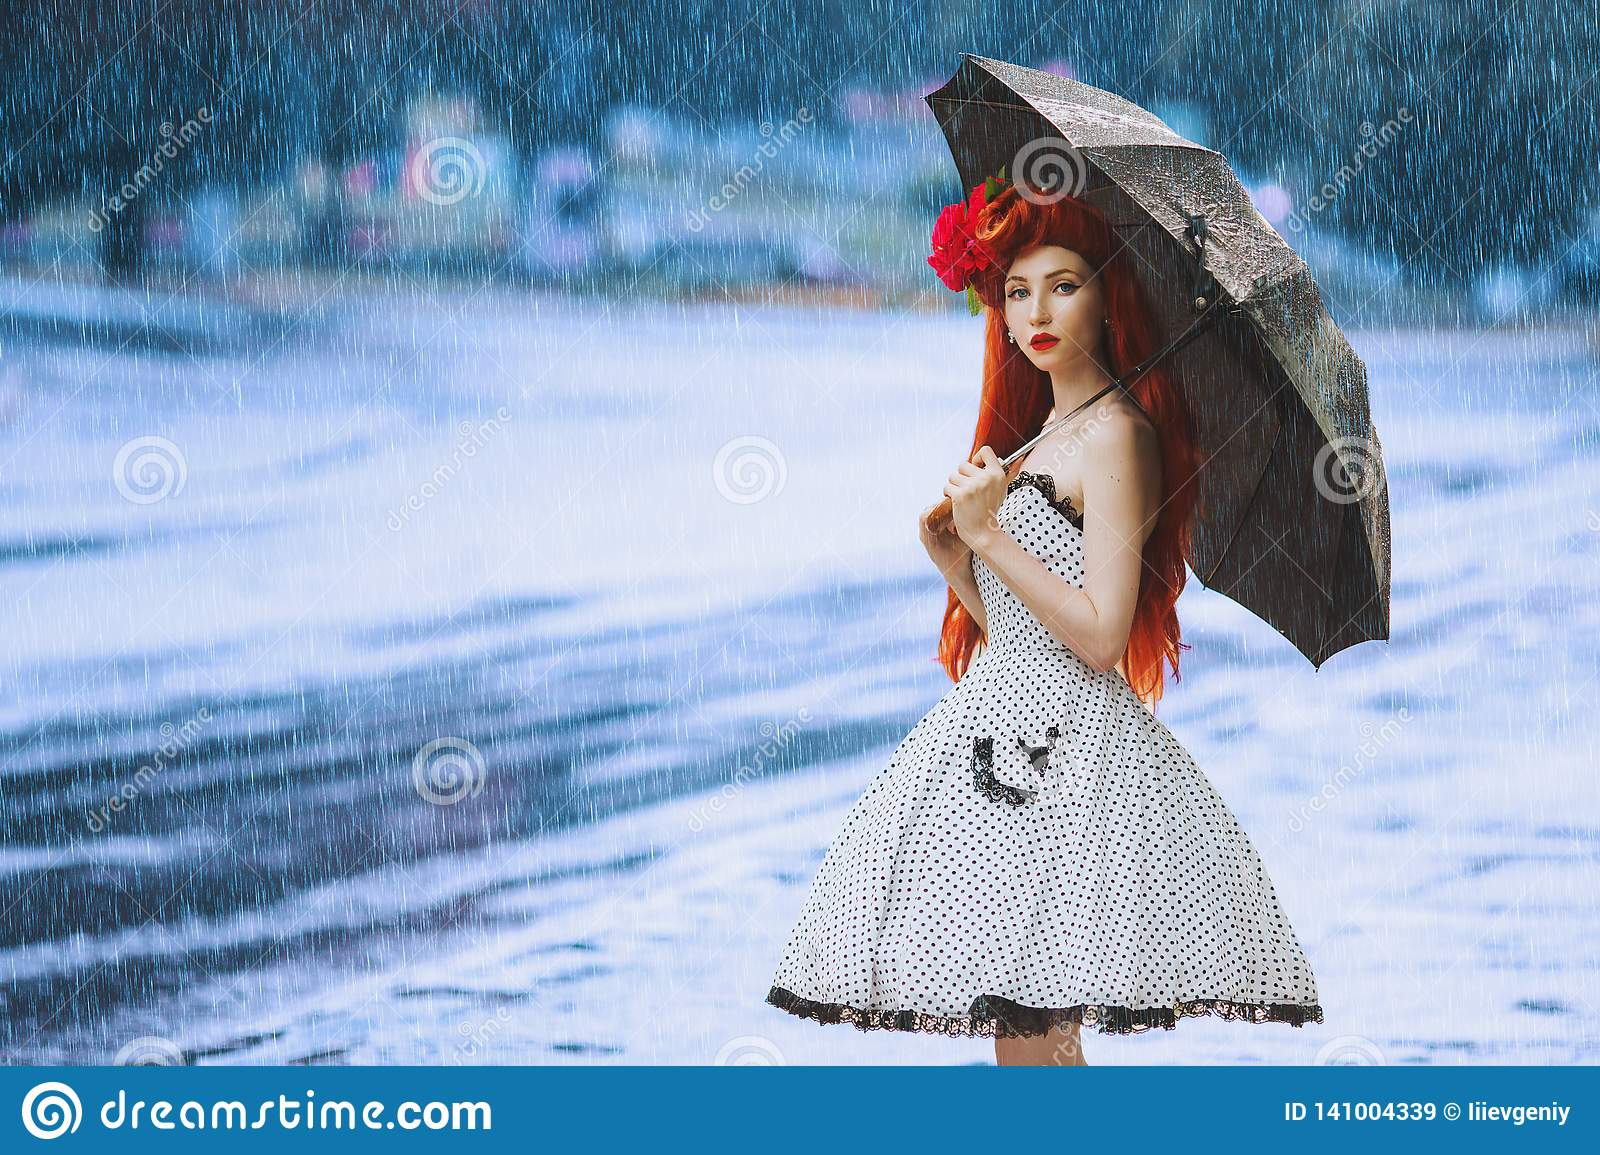 Raining cold climate. Autumn rain fall. Weather change. Sneeze girl in vintage dress hold umbrella. Climate change. Umbrella